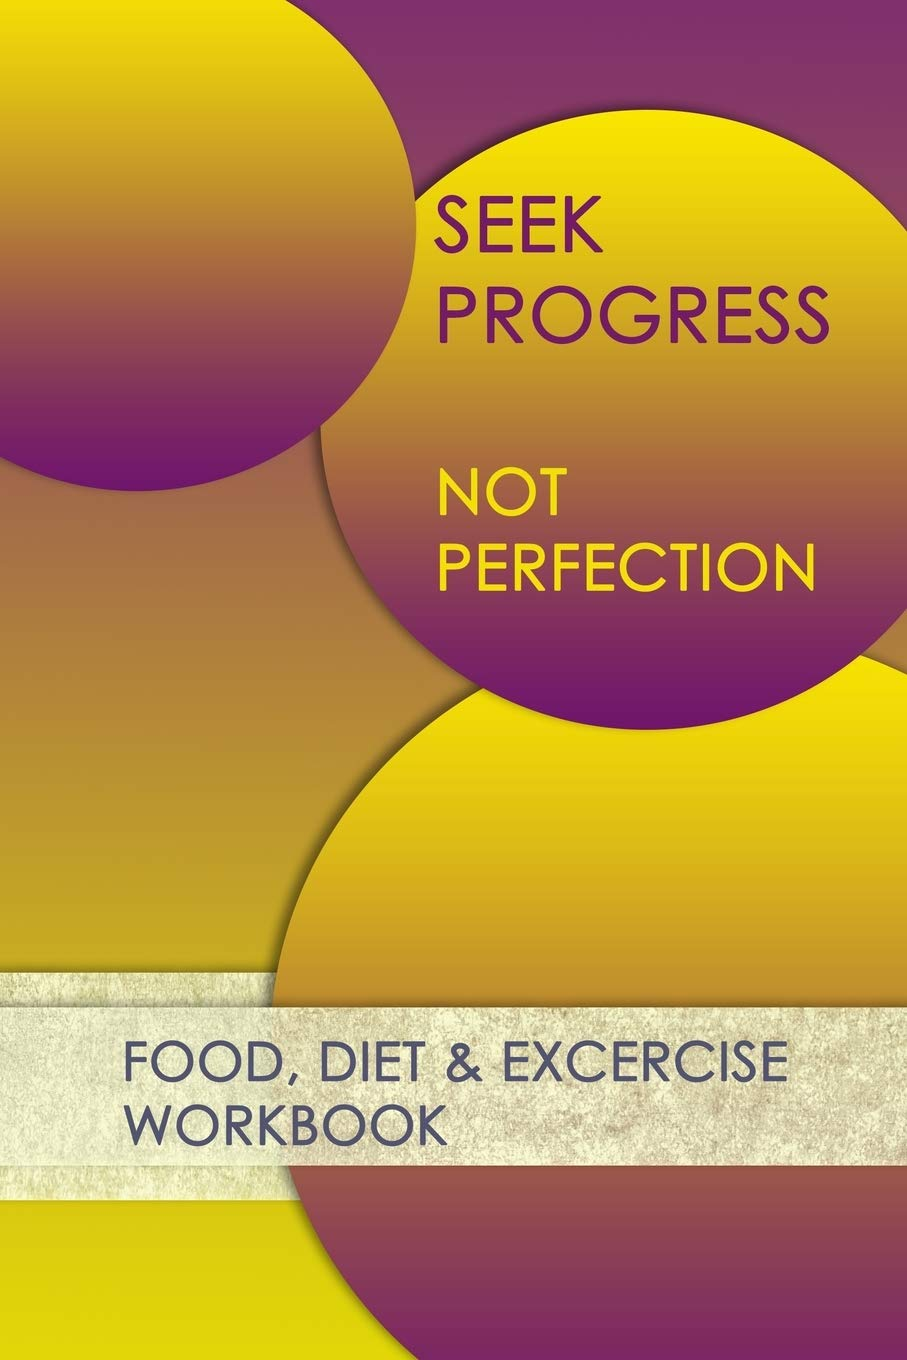 diet plan and exercise from professional